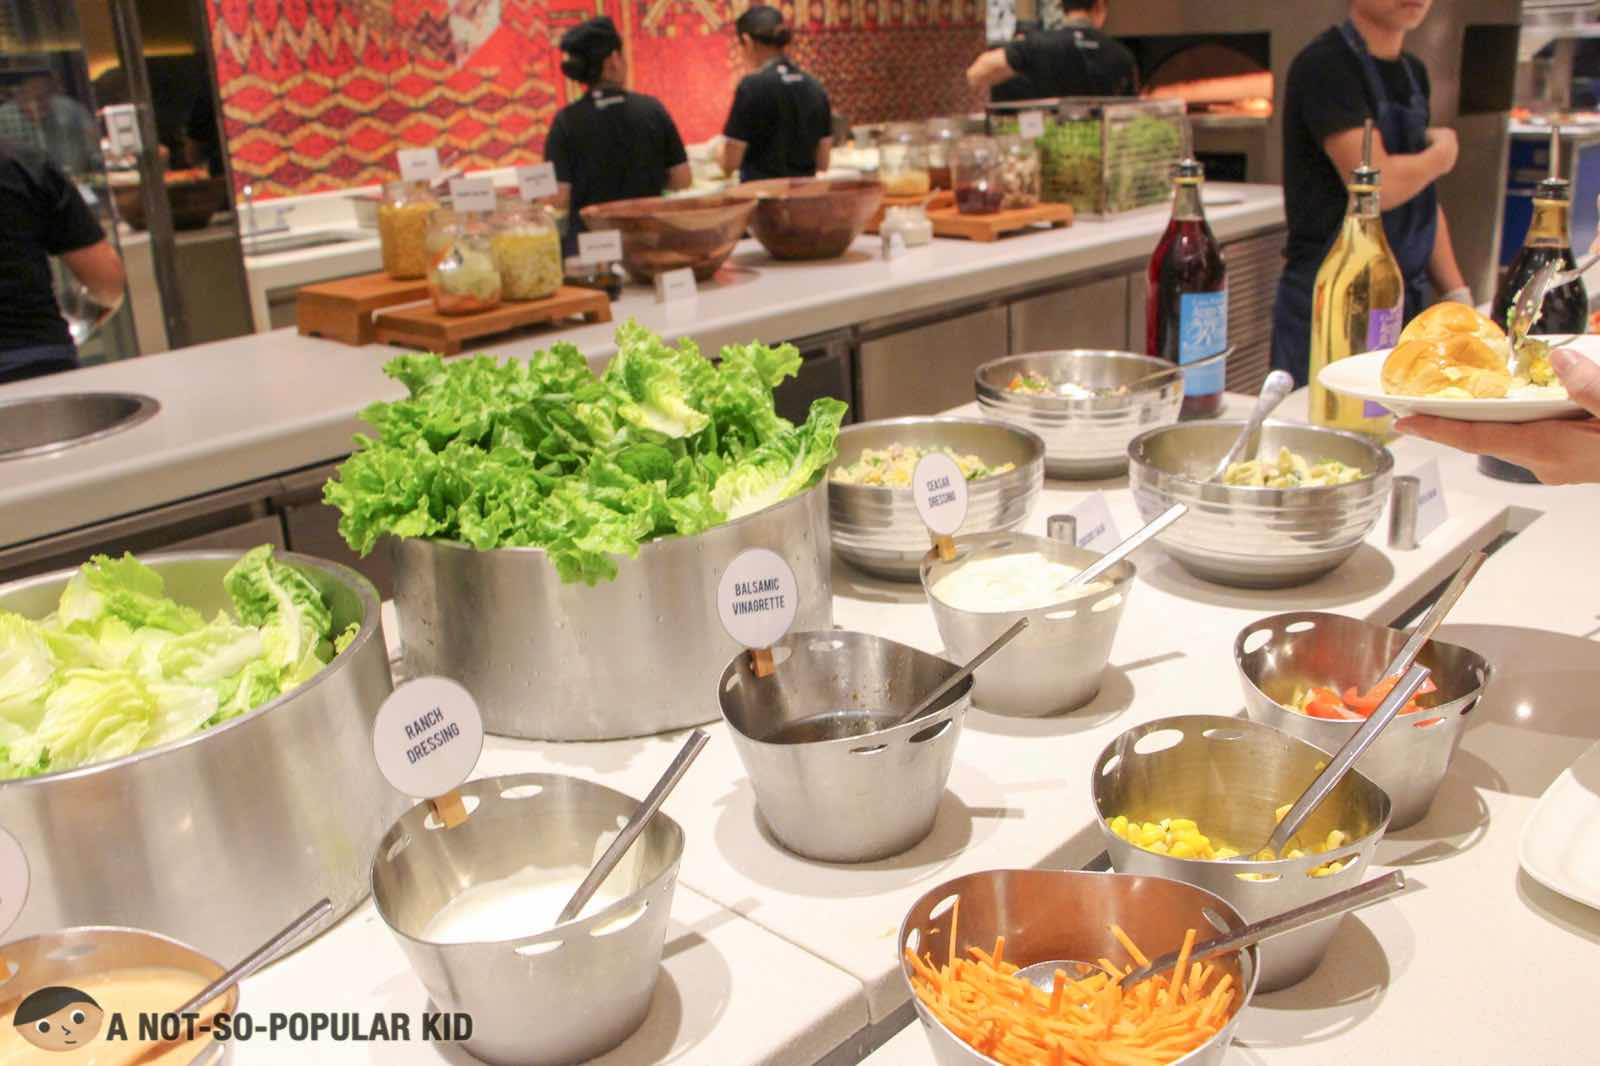 Salad Station of S Kitchen, Sheraton Hotel